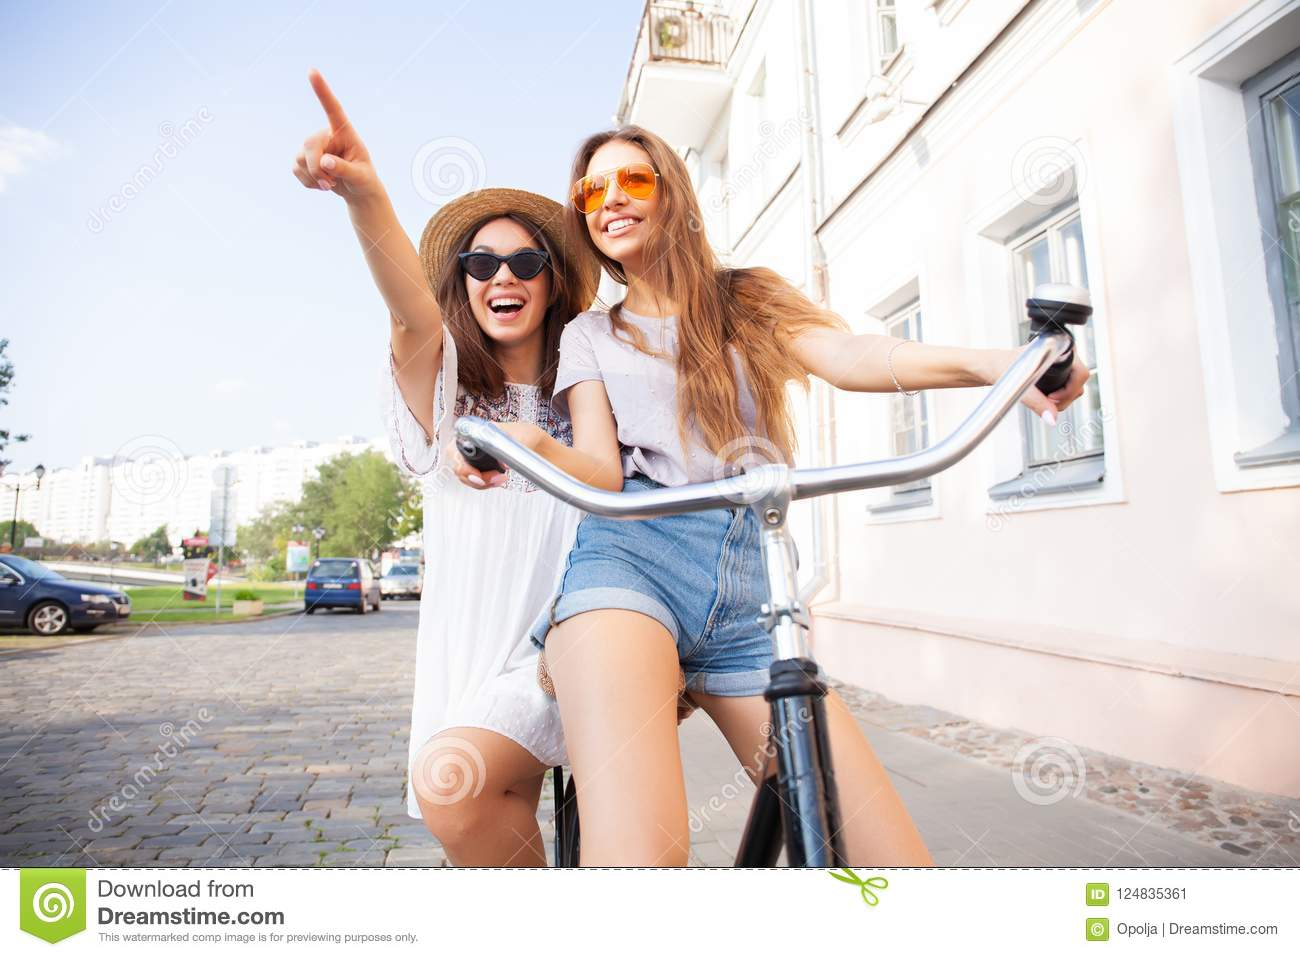 Joyful young women riding a bicycle together. Best friends having fun on a bike at the river promenade in the cit.